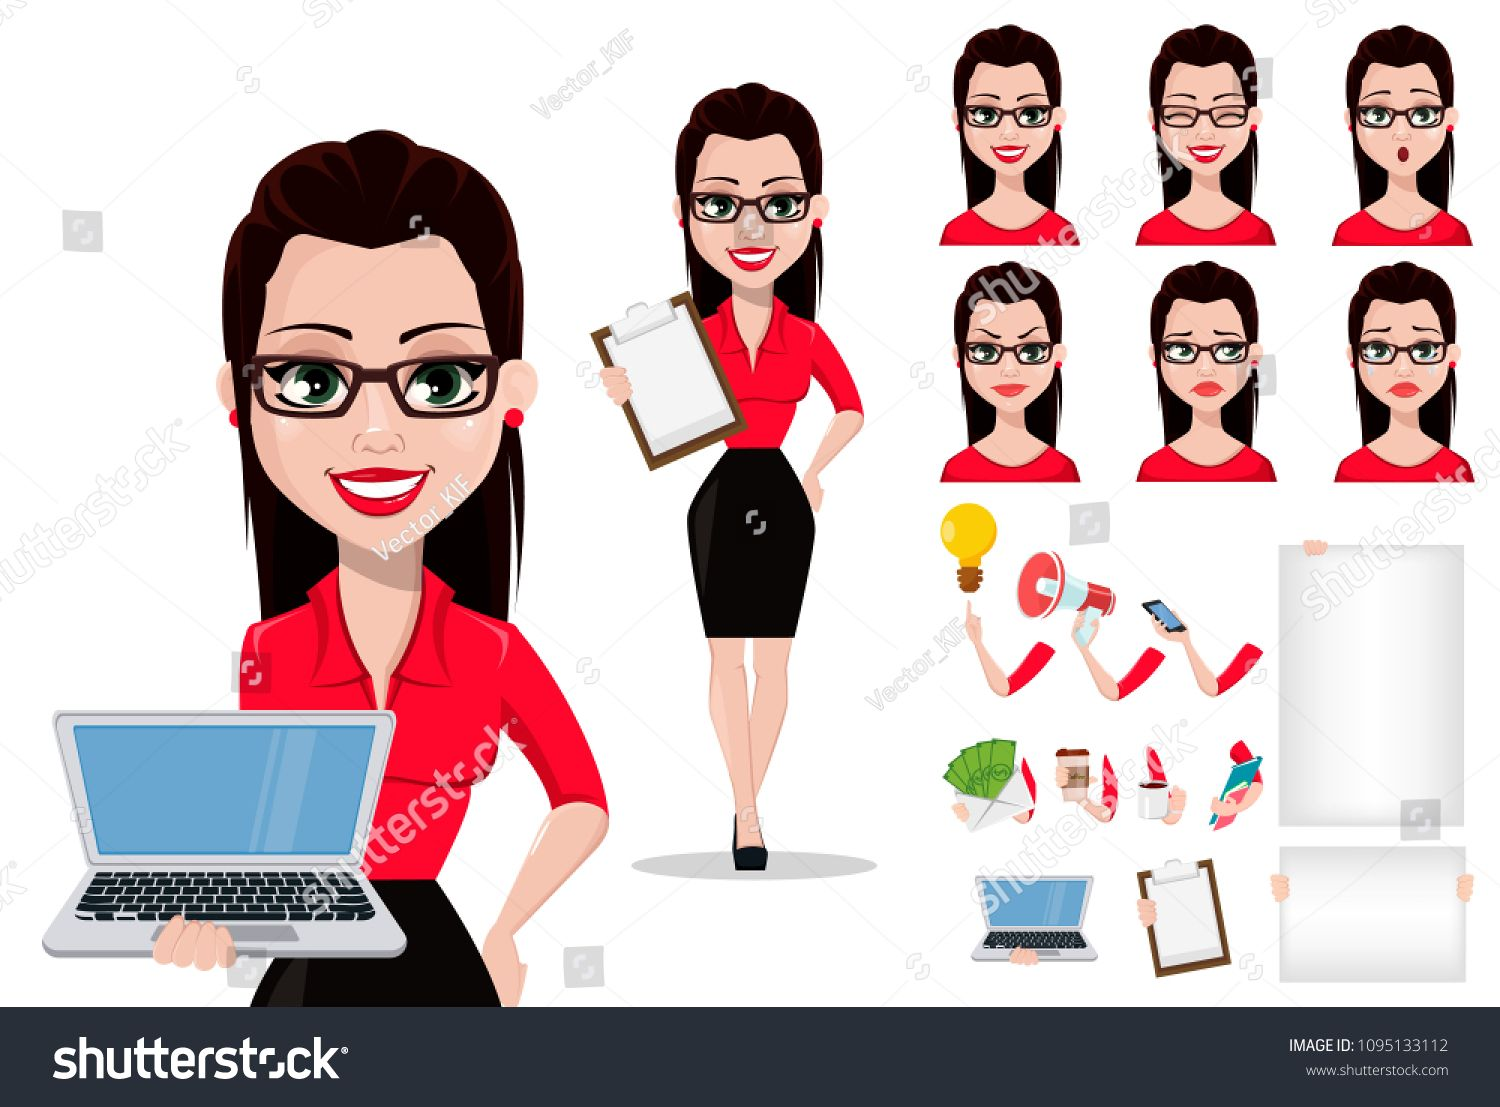 Photo of Sexy secretary, cartoon character creation set, pack of body parts, emotions and things. Beautiful office assistant in office style clothes. Vector illustration